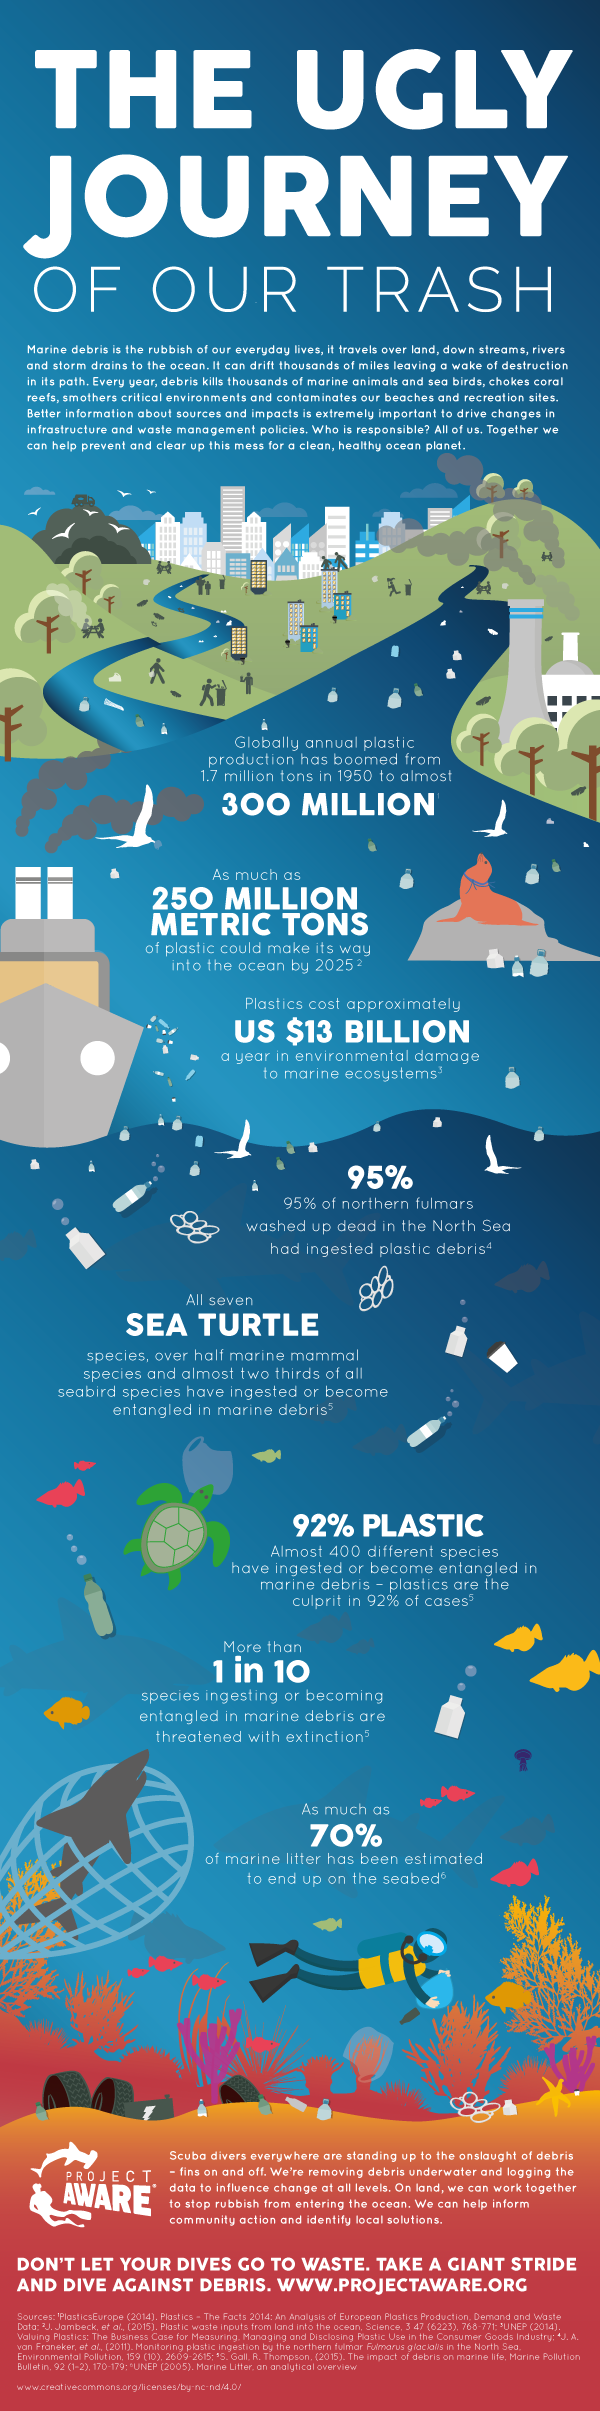 Ugly Journey of Trash Infographic